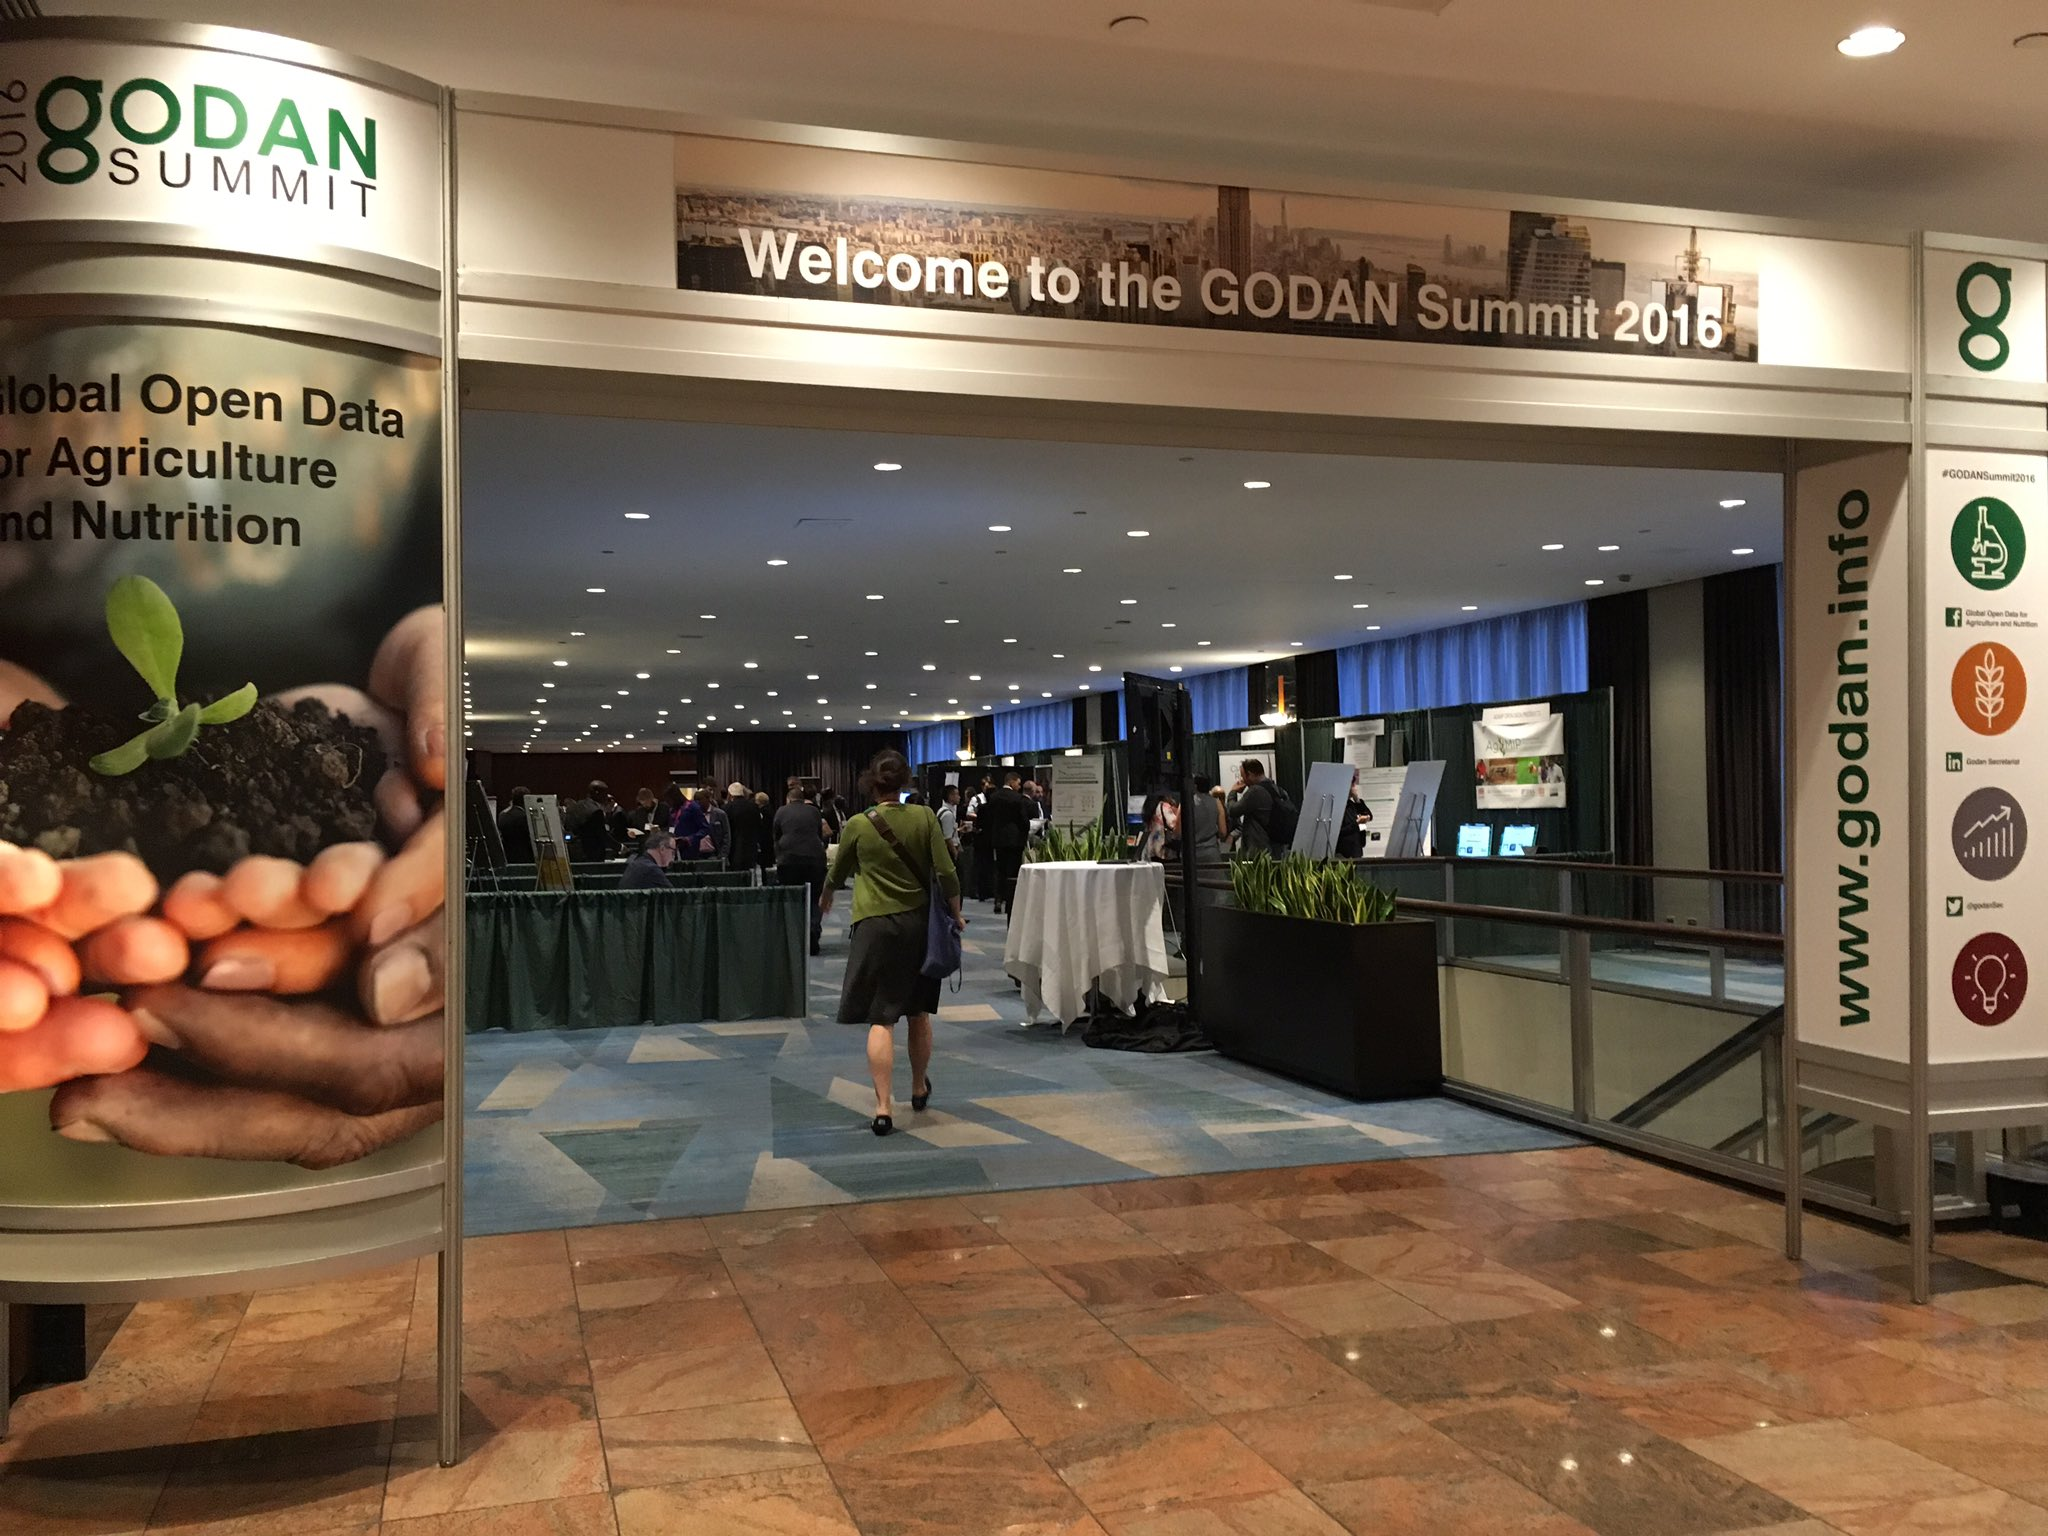 Good morning #NewYorkCity! This morning #GODANSummit2016 kicks off and it's already buzzing! #opendata #agriculture https://t.co/Rggyn08YgQ